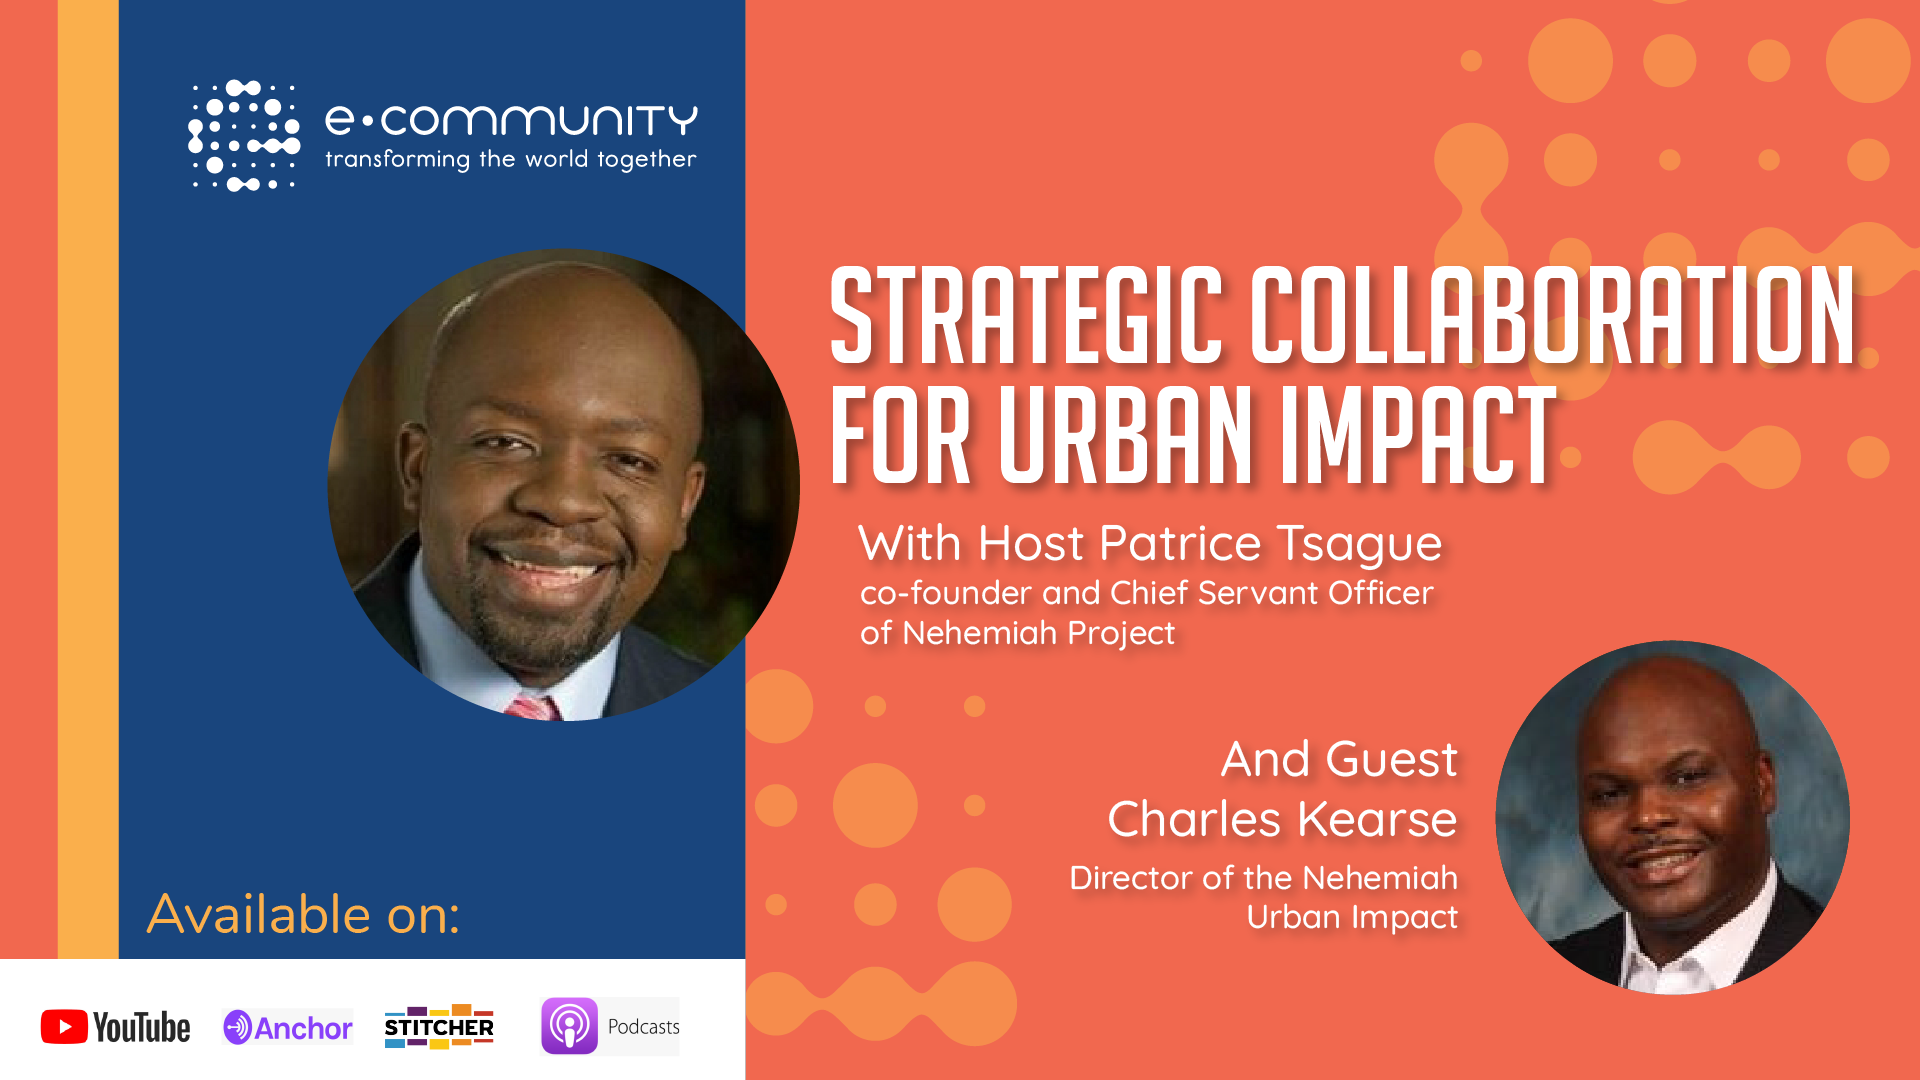 Strategic Collaboration for Urban Impact